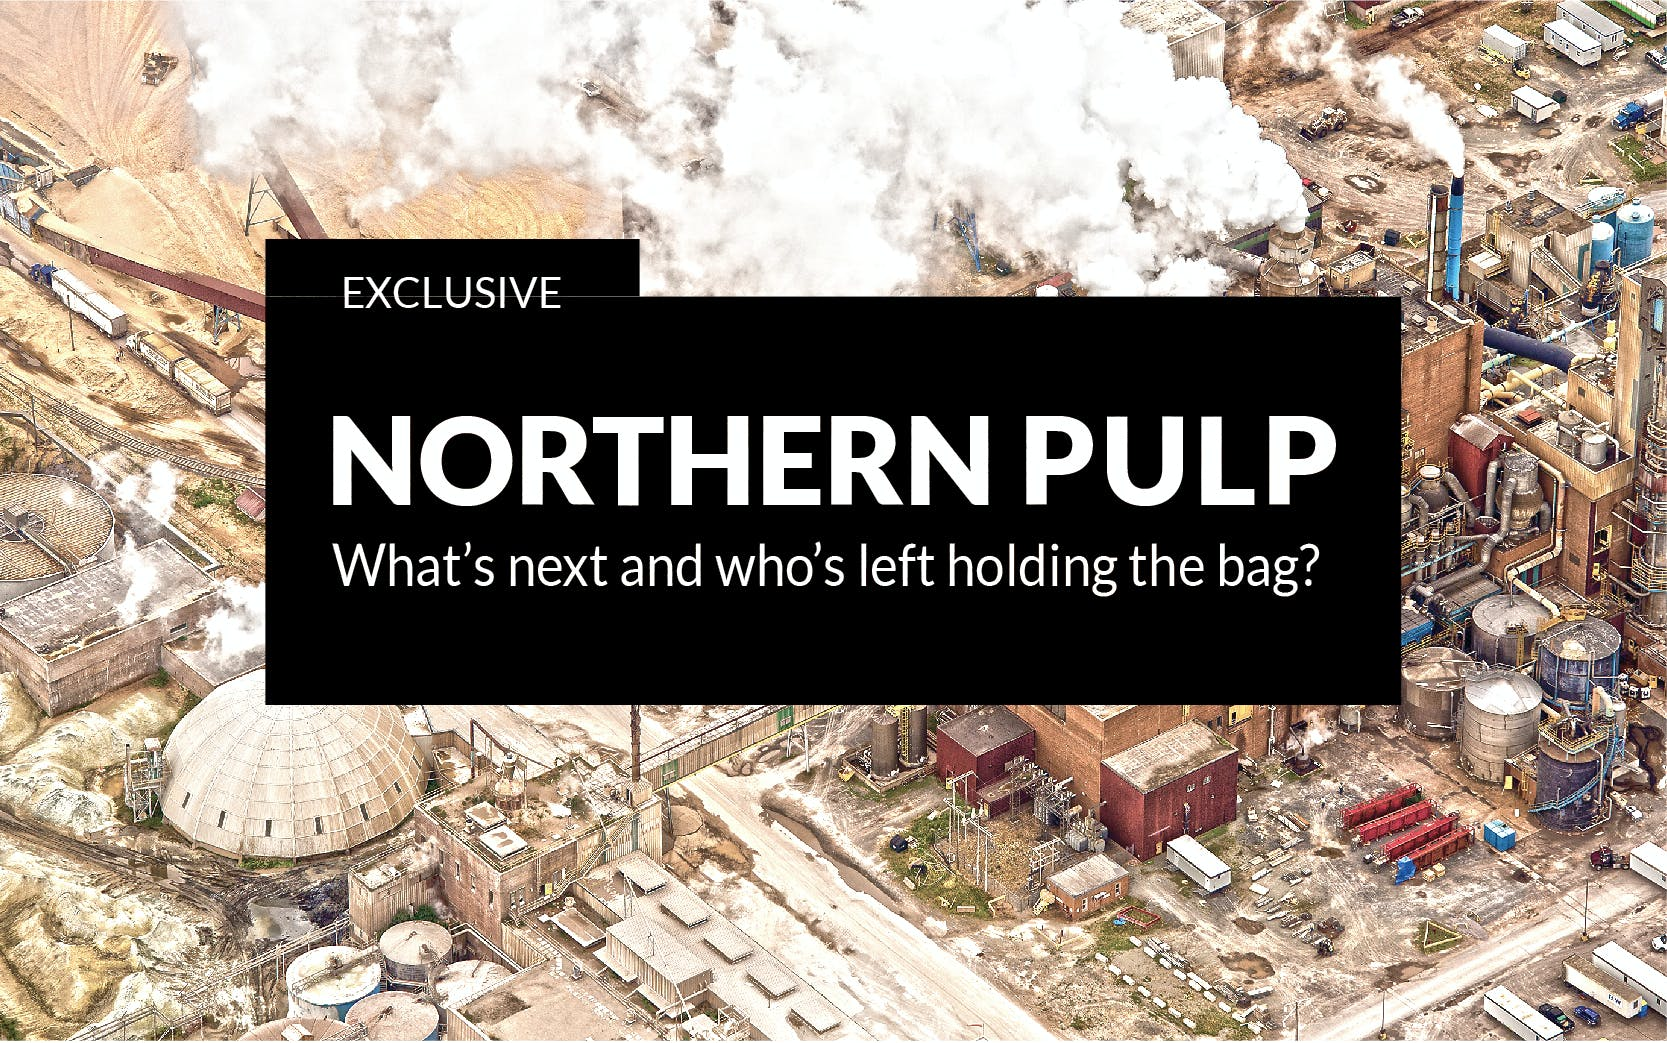 Banner for Northern Pulp series of stories published in Jan. 2019